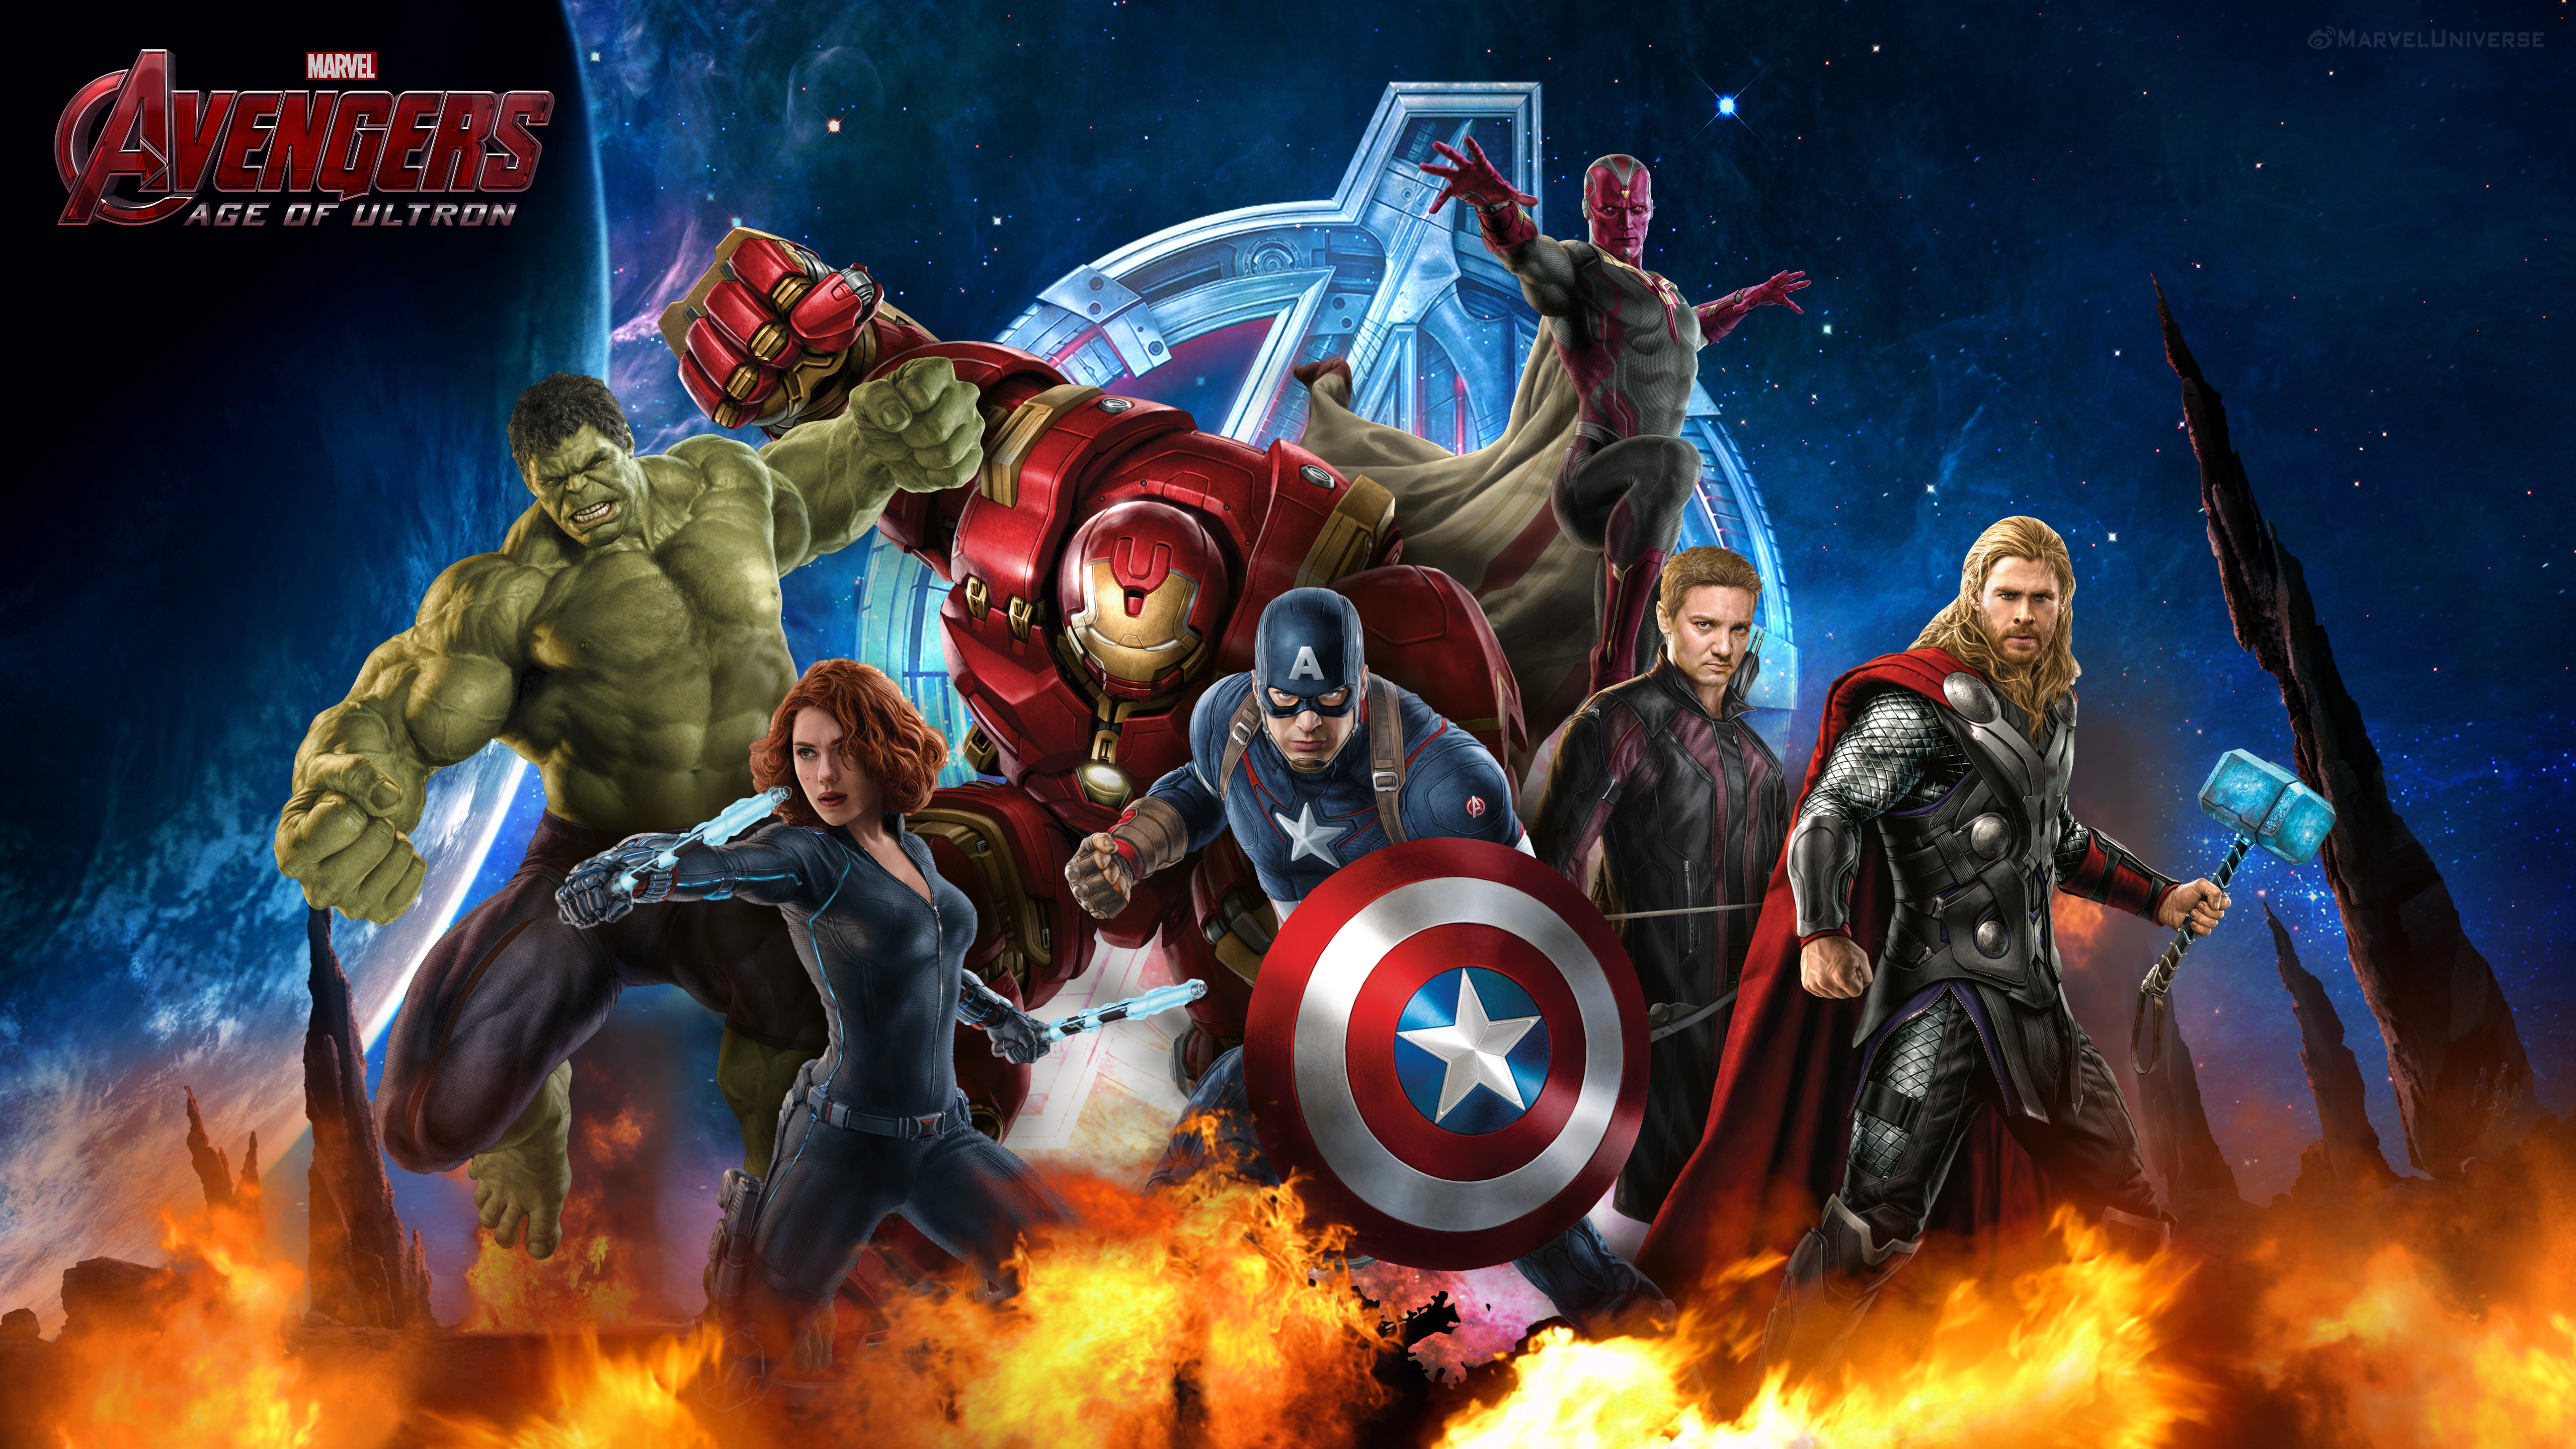 Age of Ultron You are downloading Avengers Age of Ultron wallpaper 14 5120x2880